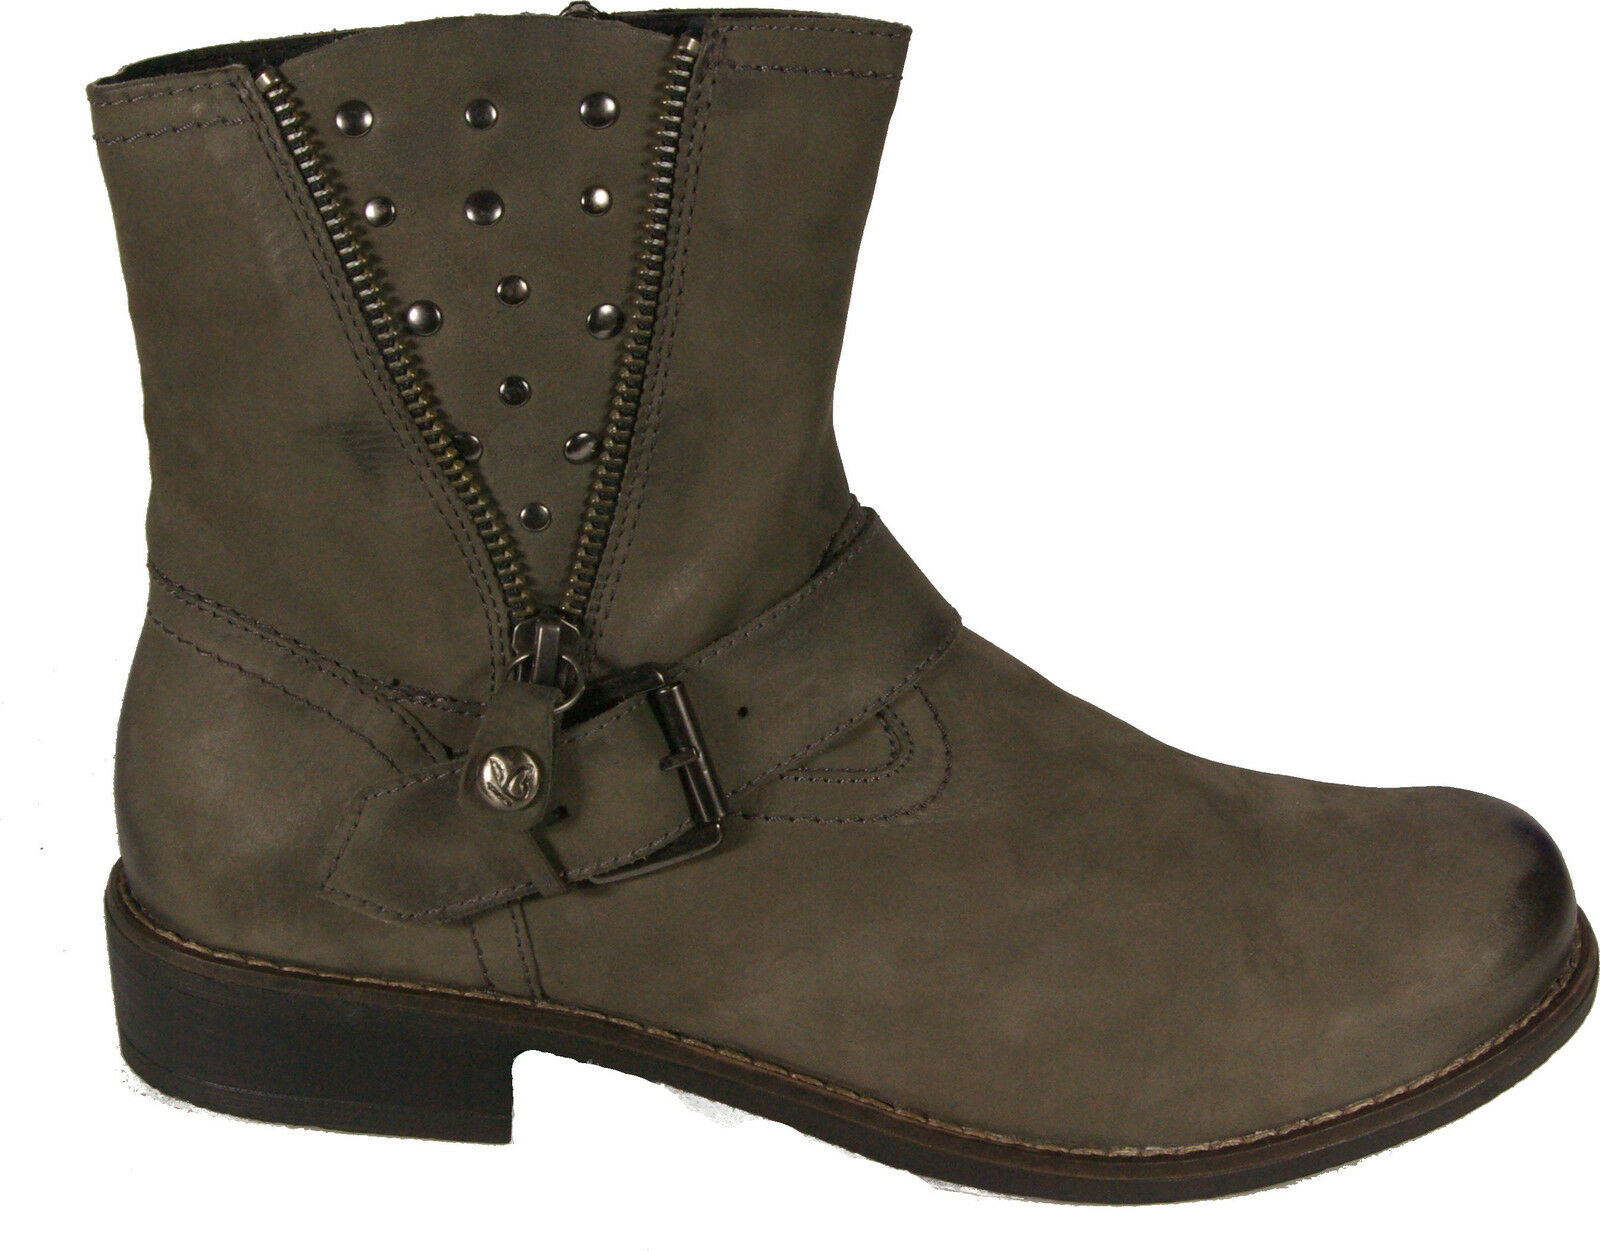 Caprice shoes City Ankle Boots Grey Real Leather Nubuck Zip New